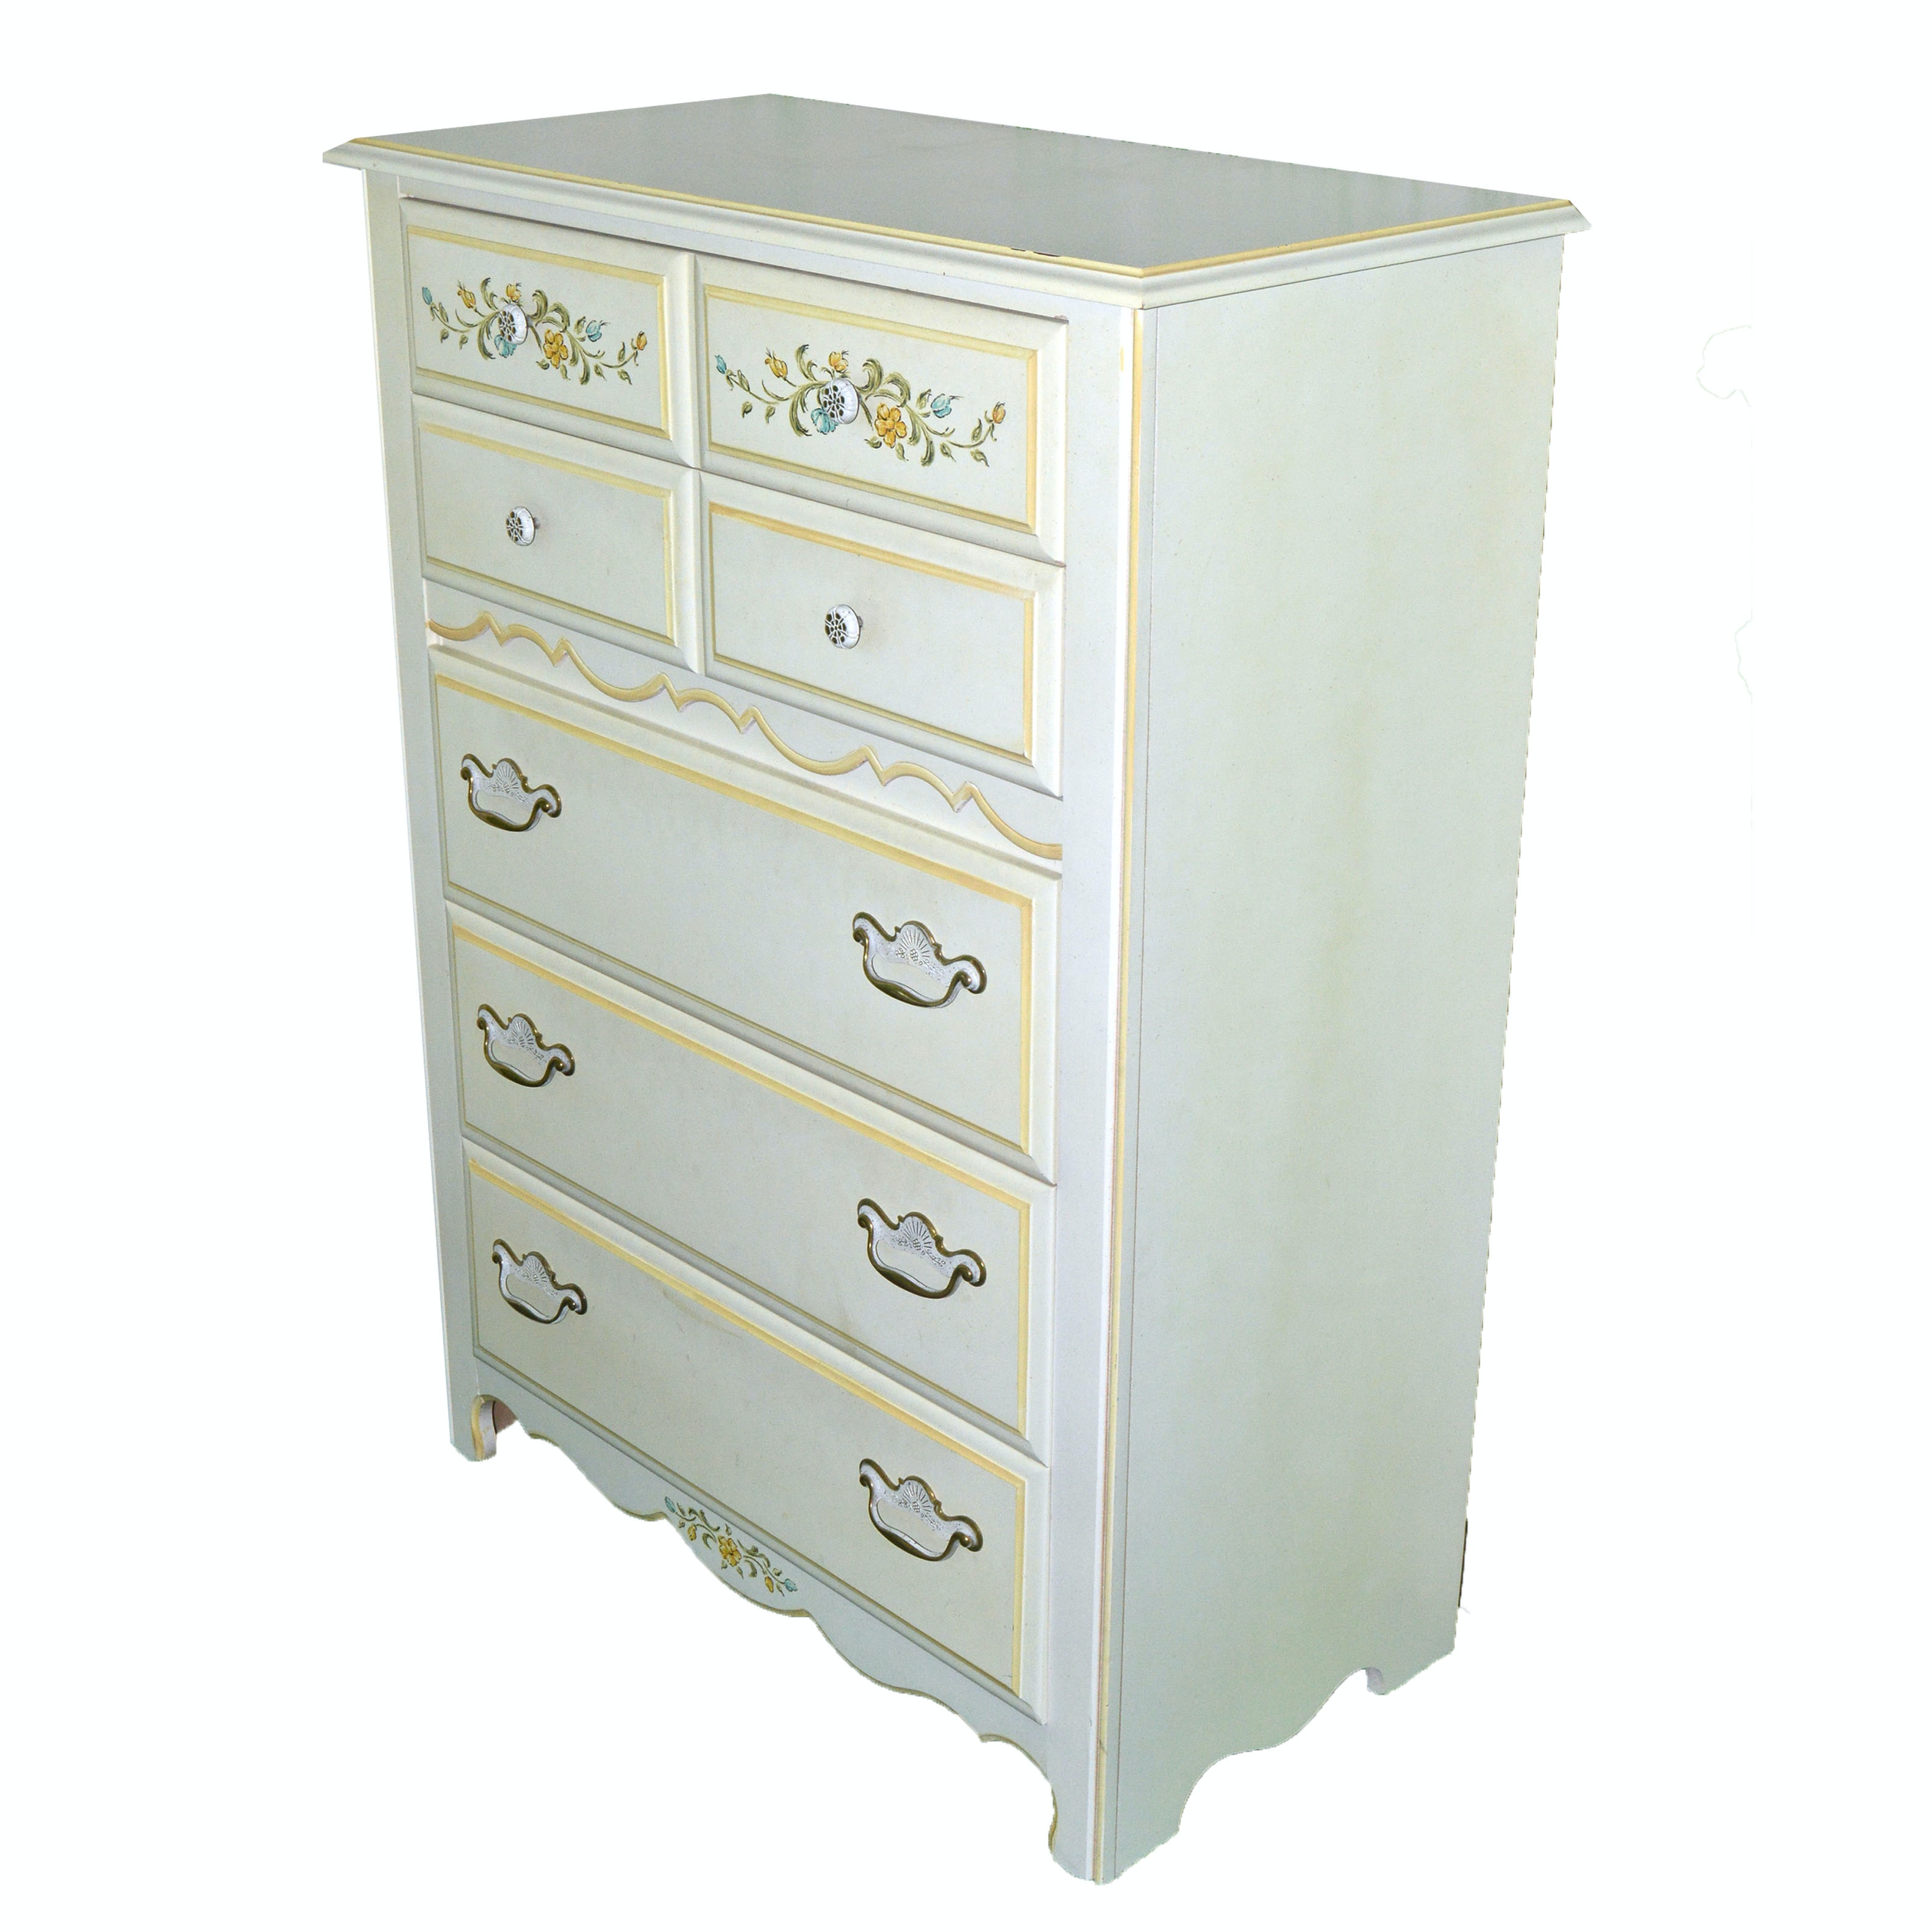 French Country Inspired Chest of Drawers